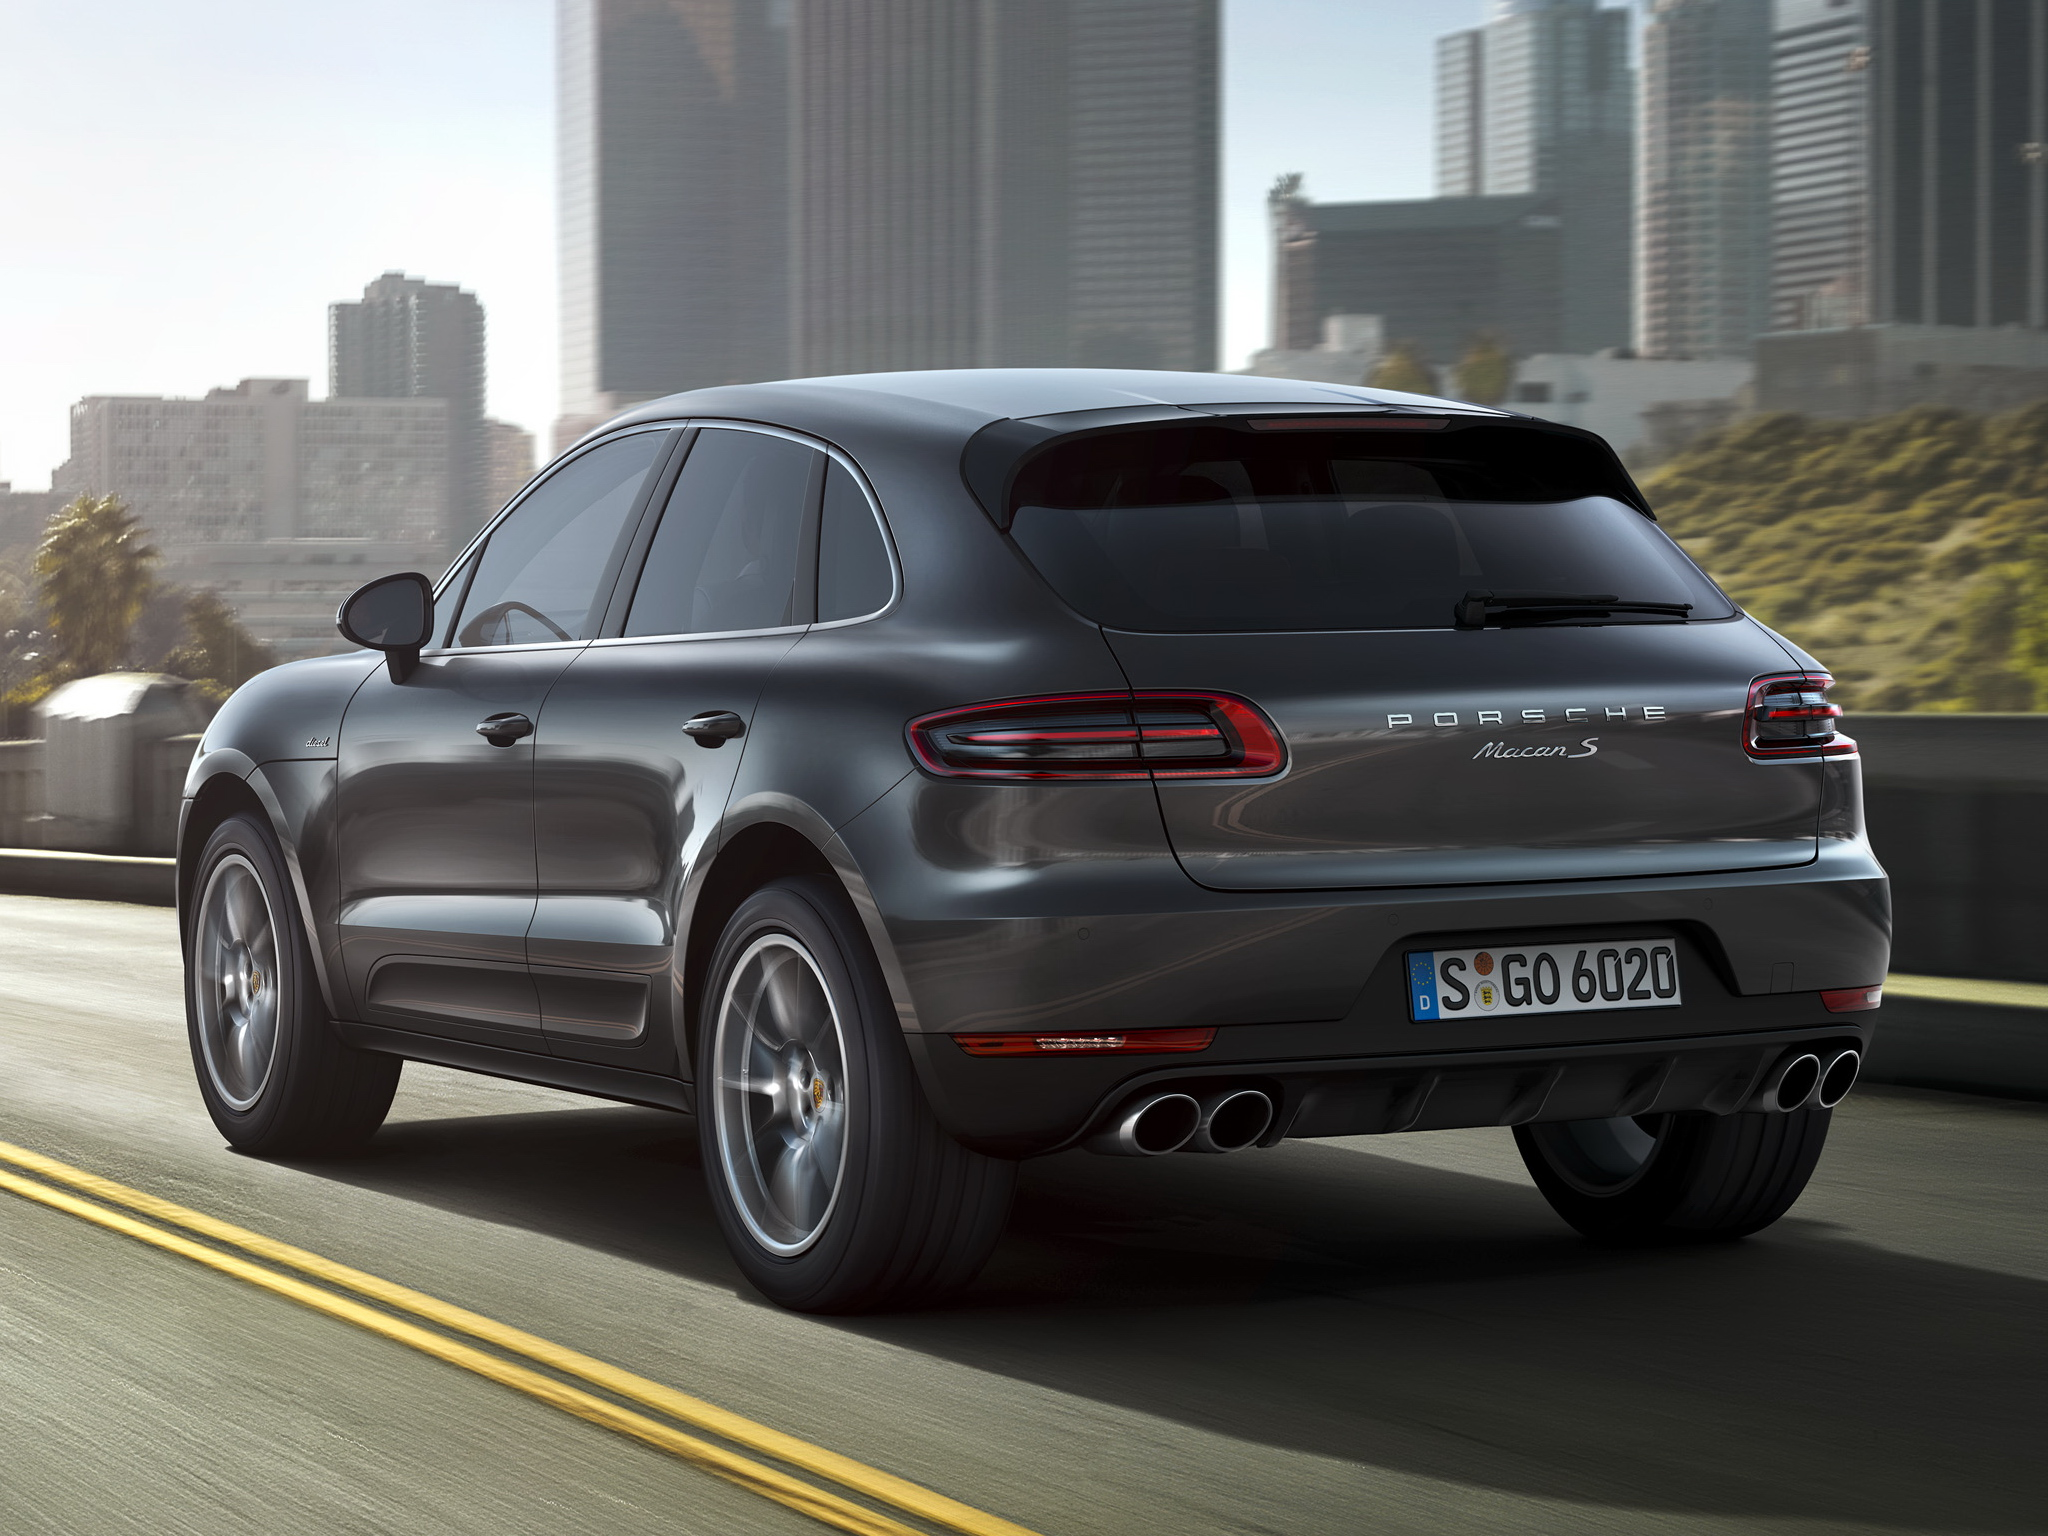 porsche macan v6 diesel model coming to america in 2015 autoevolution. Black Bedroom Furniture Sets. Home Design Ideas